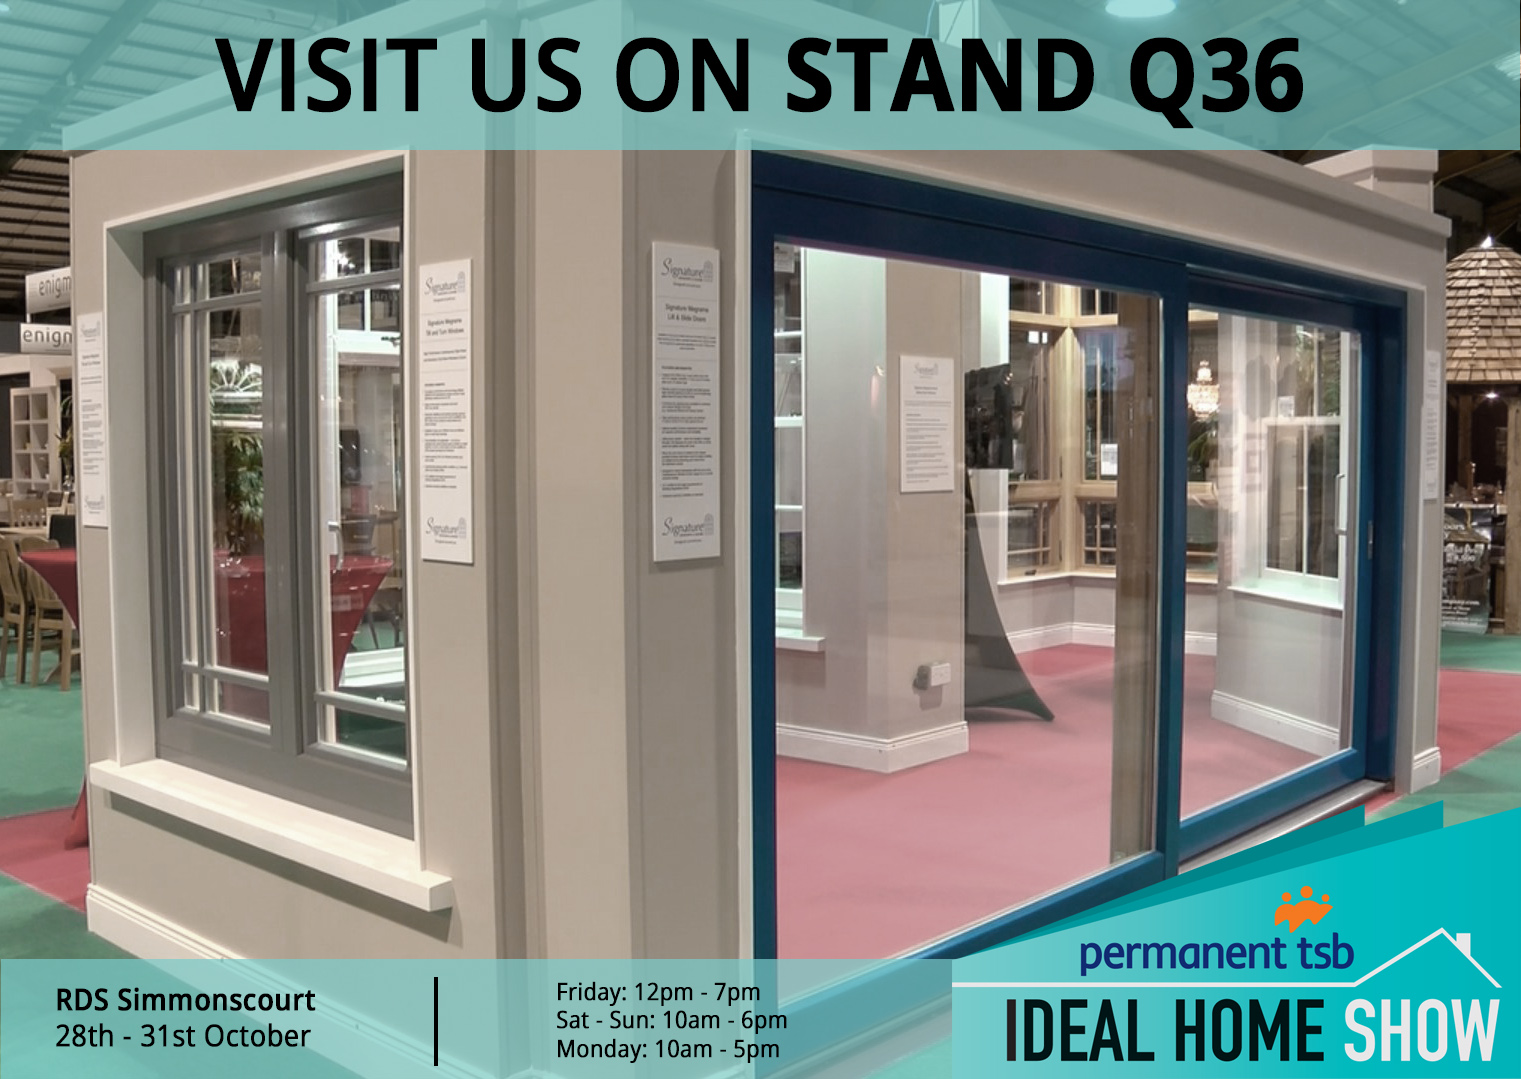 Our Stand Q36 at the Ideal Home Show